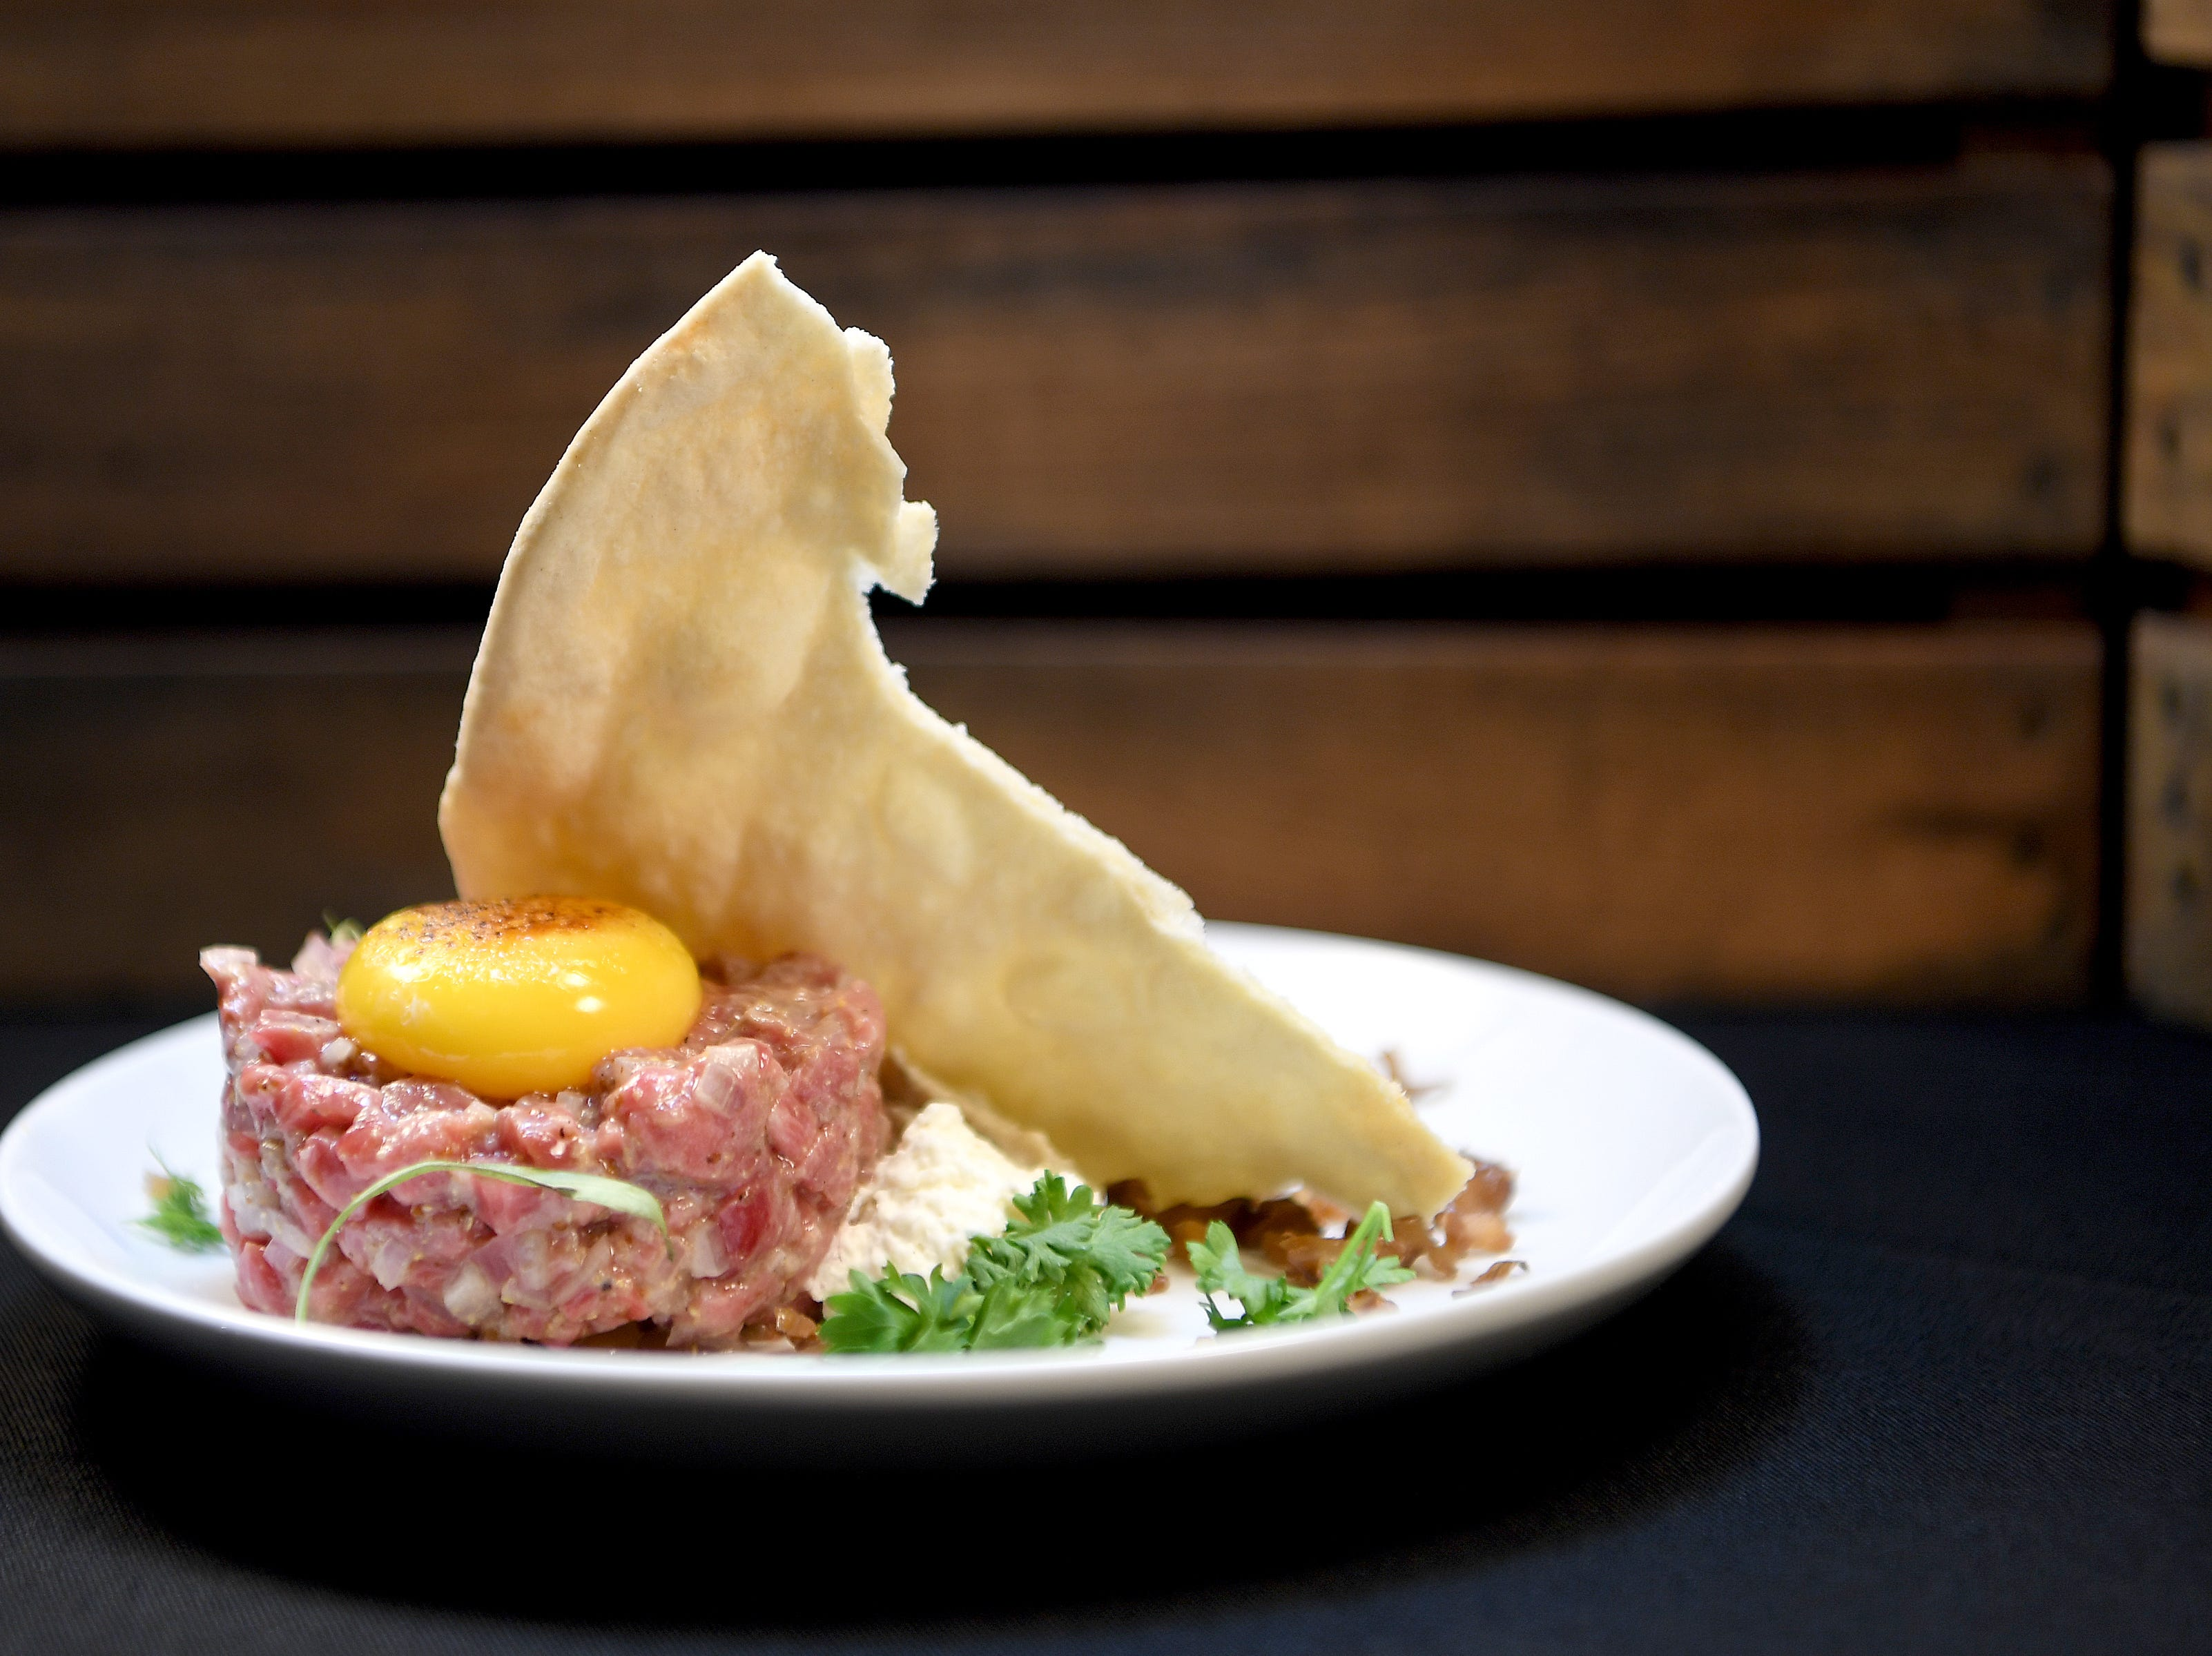 The Bavette steak tartare at Daphne at Twisted Laurel features smoked eggplant and marrow espuma, sunchoke tahini, lavash, pickled walnut salsa and topped with a blisted yolk.